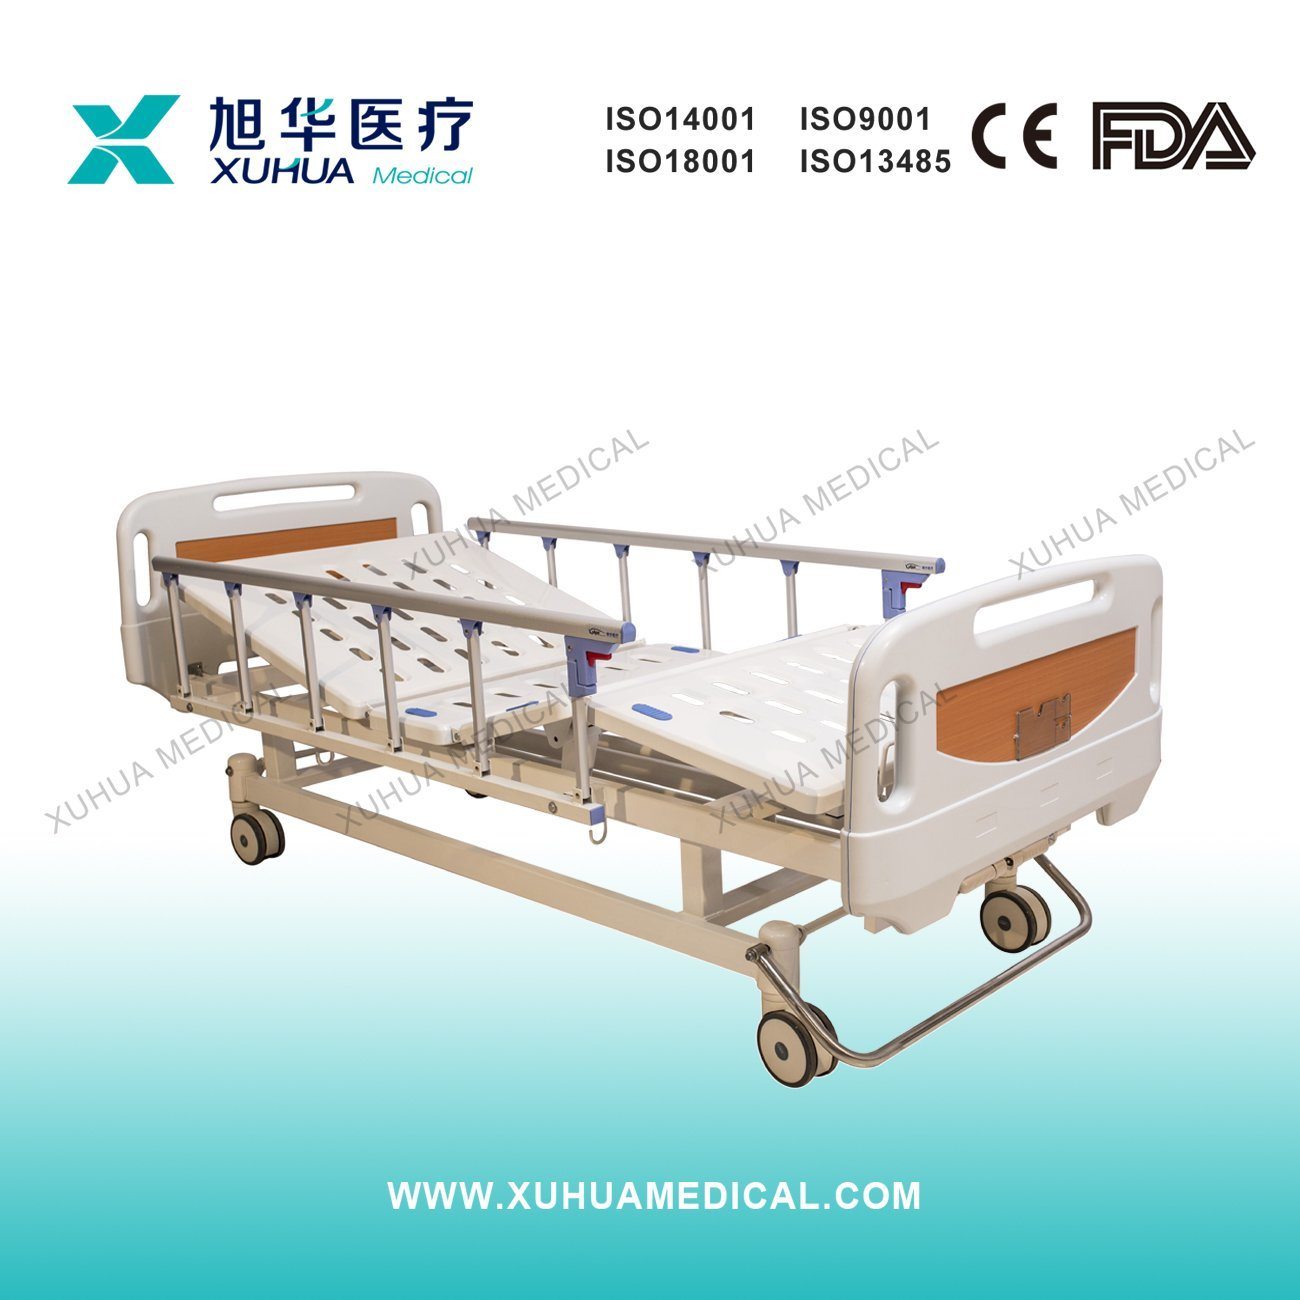 Central Braking Two Cranks Manual Hospital Bed